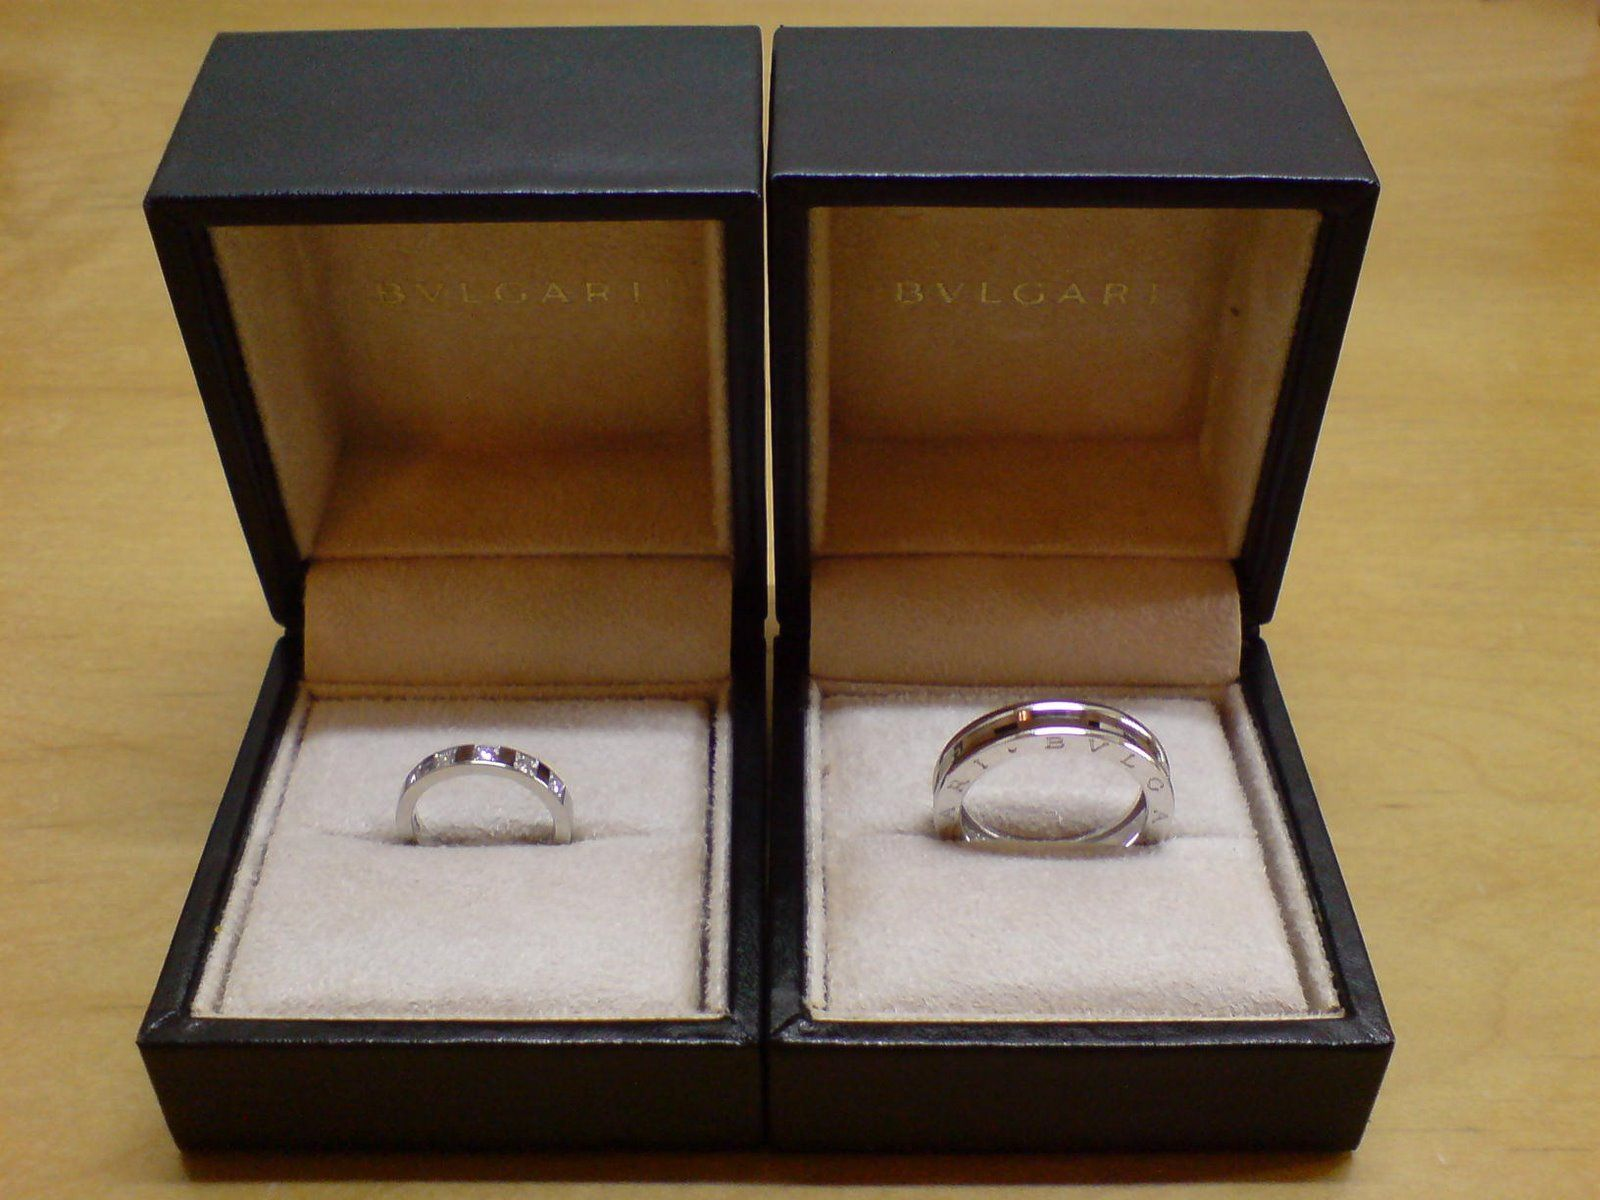 Bvlgari httpforeverbeginstonightblogspotcom200712wedding